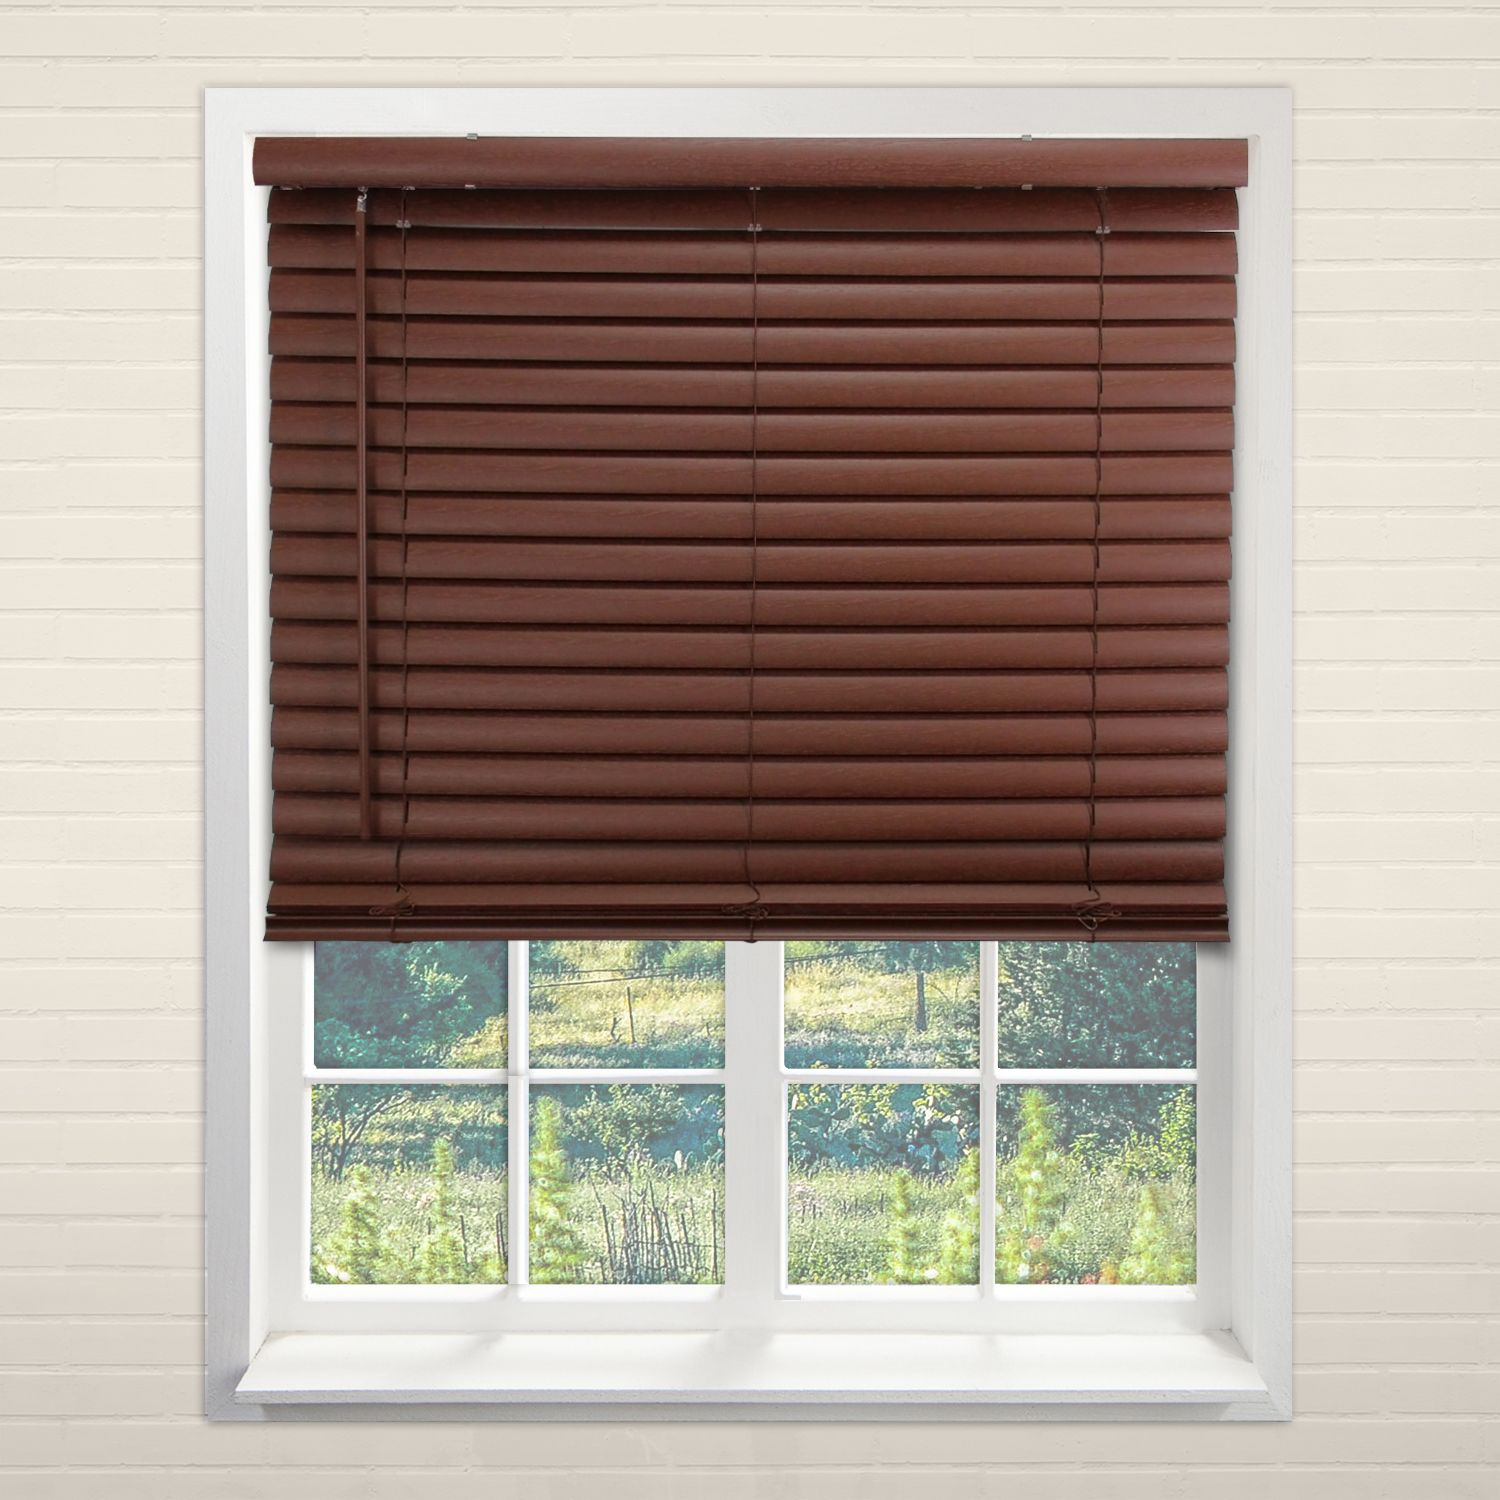 Sears Blinds For Windows Best Home Decorating Ideas